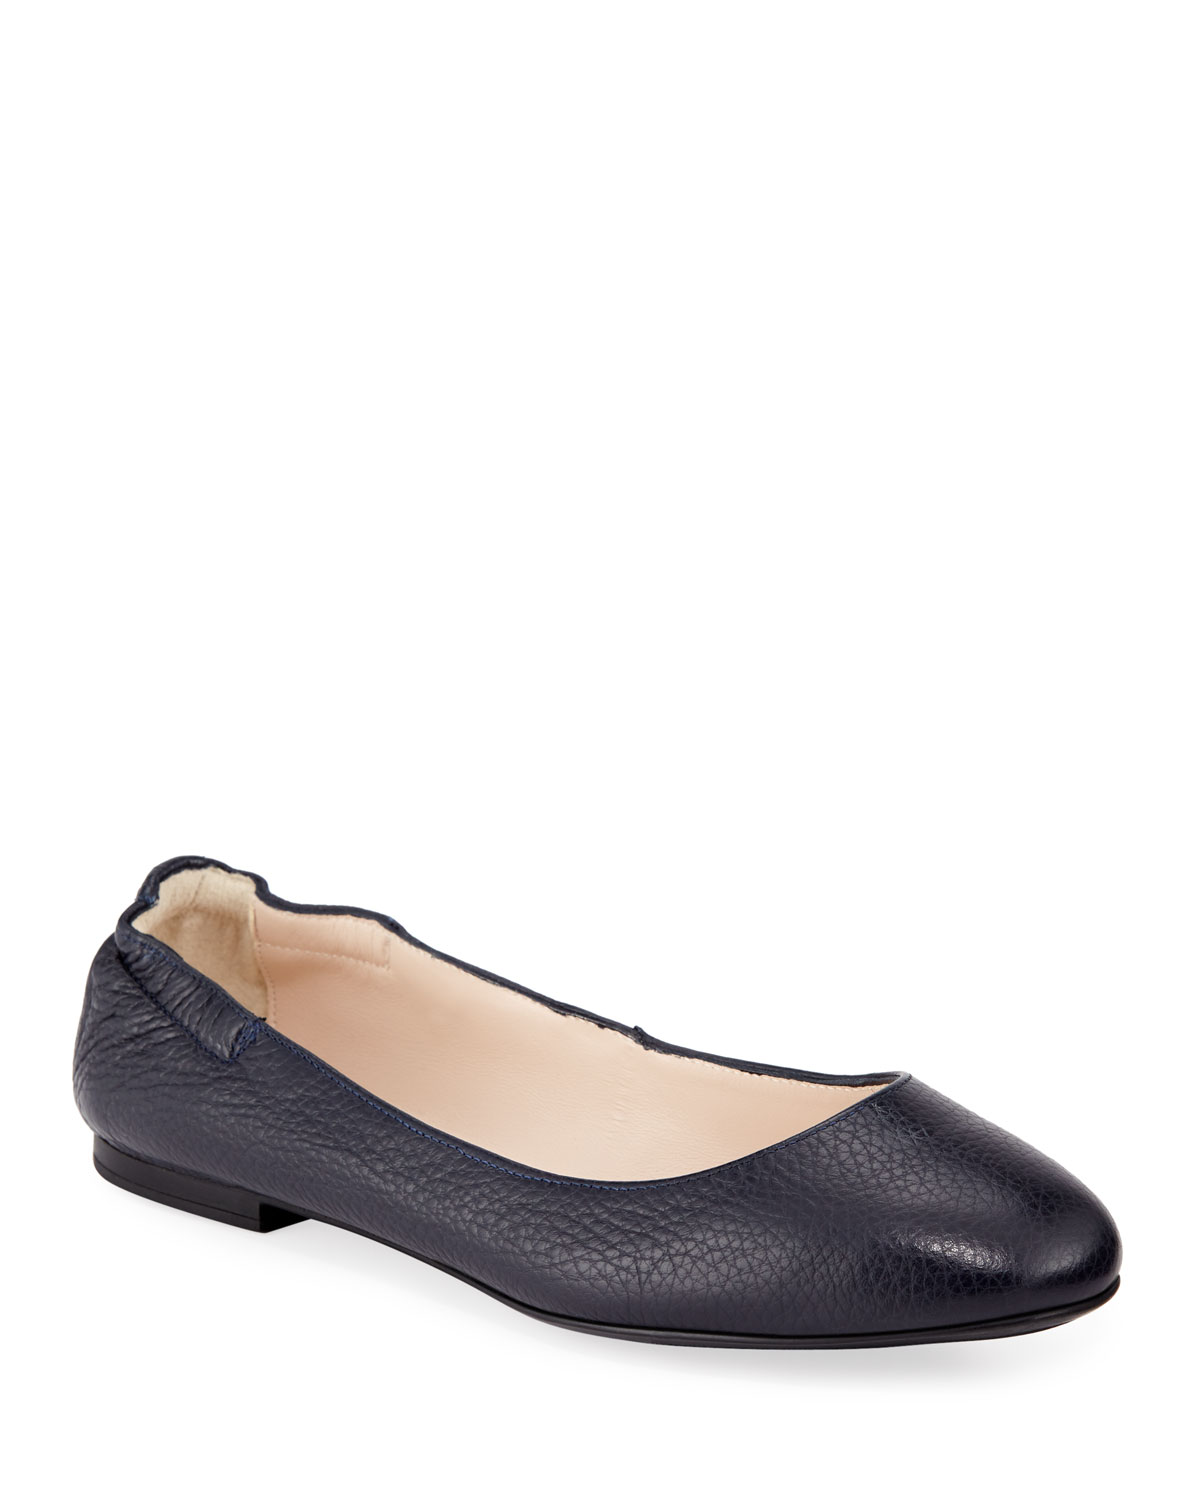 Ackley Leather Ballet Flats, Navy